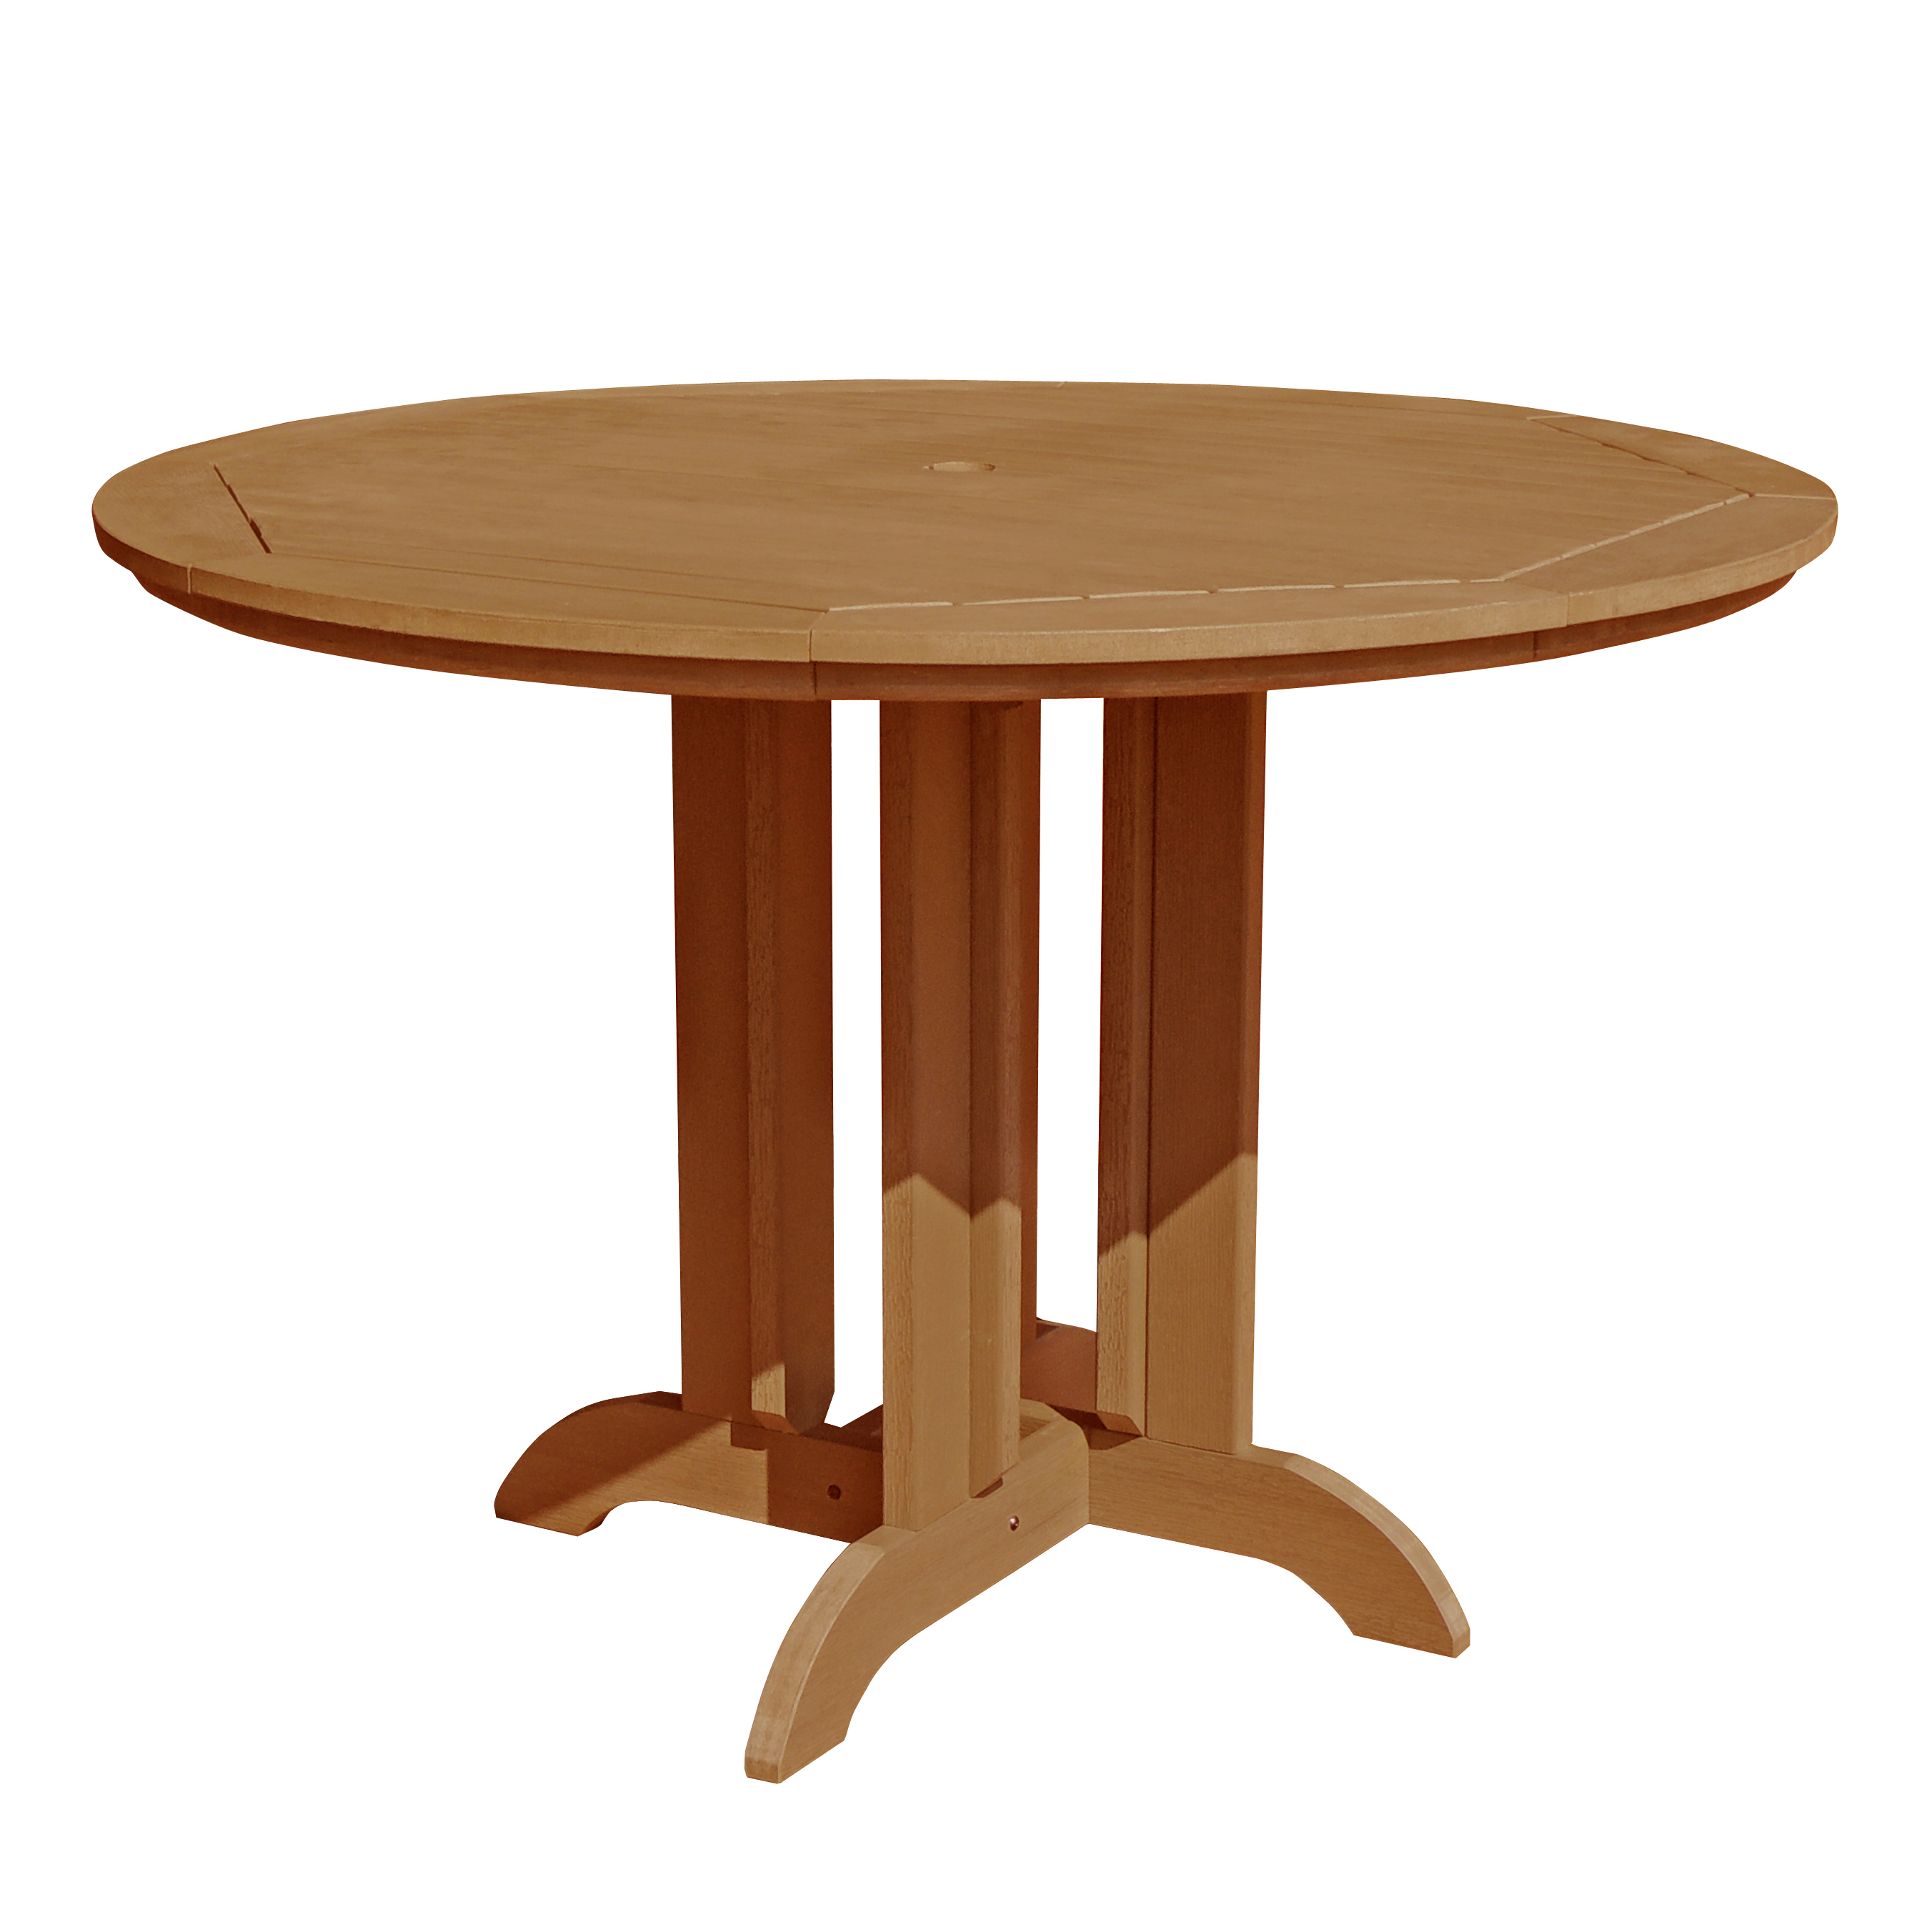 highwood® Eco-Friendly Round 48 Diameter Counter Dining Table